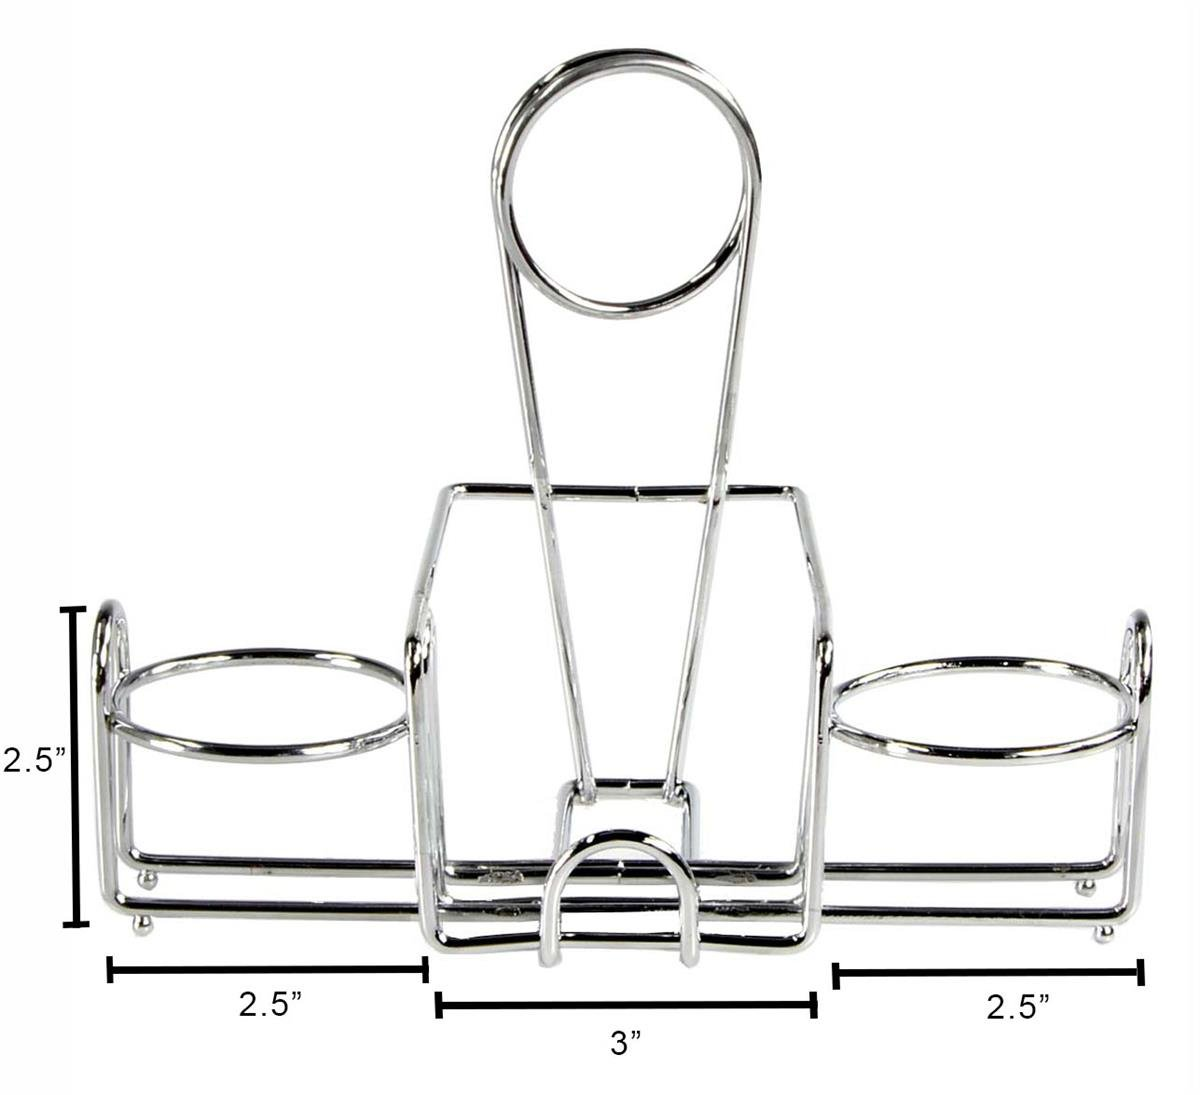 Condiment Stands with Menu Holder, 2 Round Side Compartments and Center Storage Area for Sweeteners, Steel (Chrome-Colored) - Set of 10 by Displays2go (Image #3)